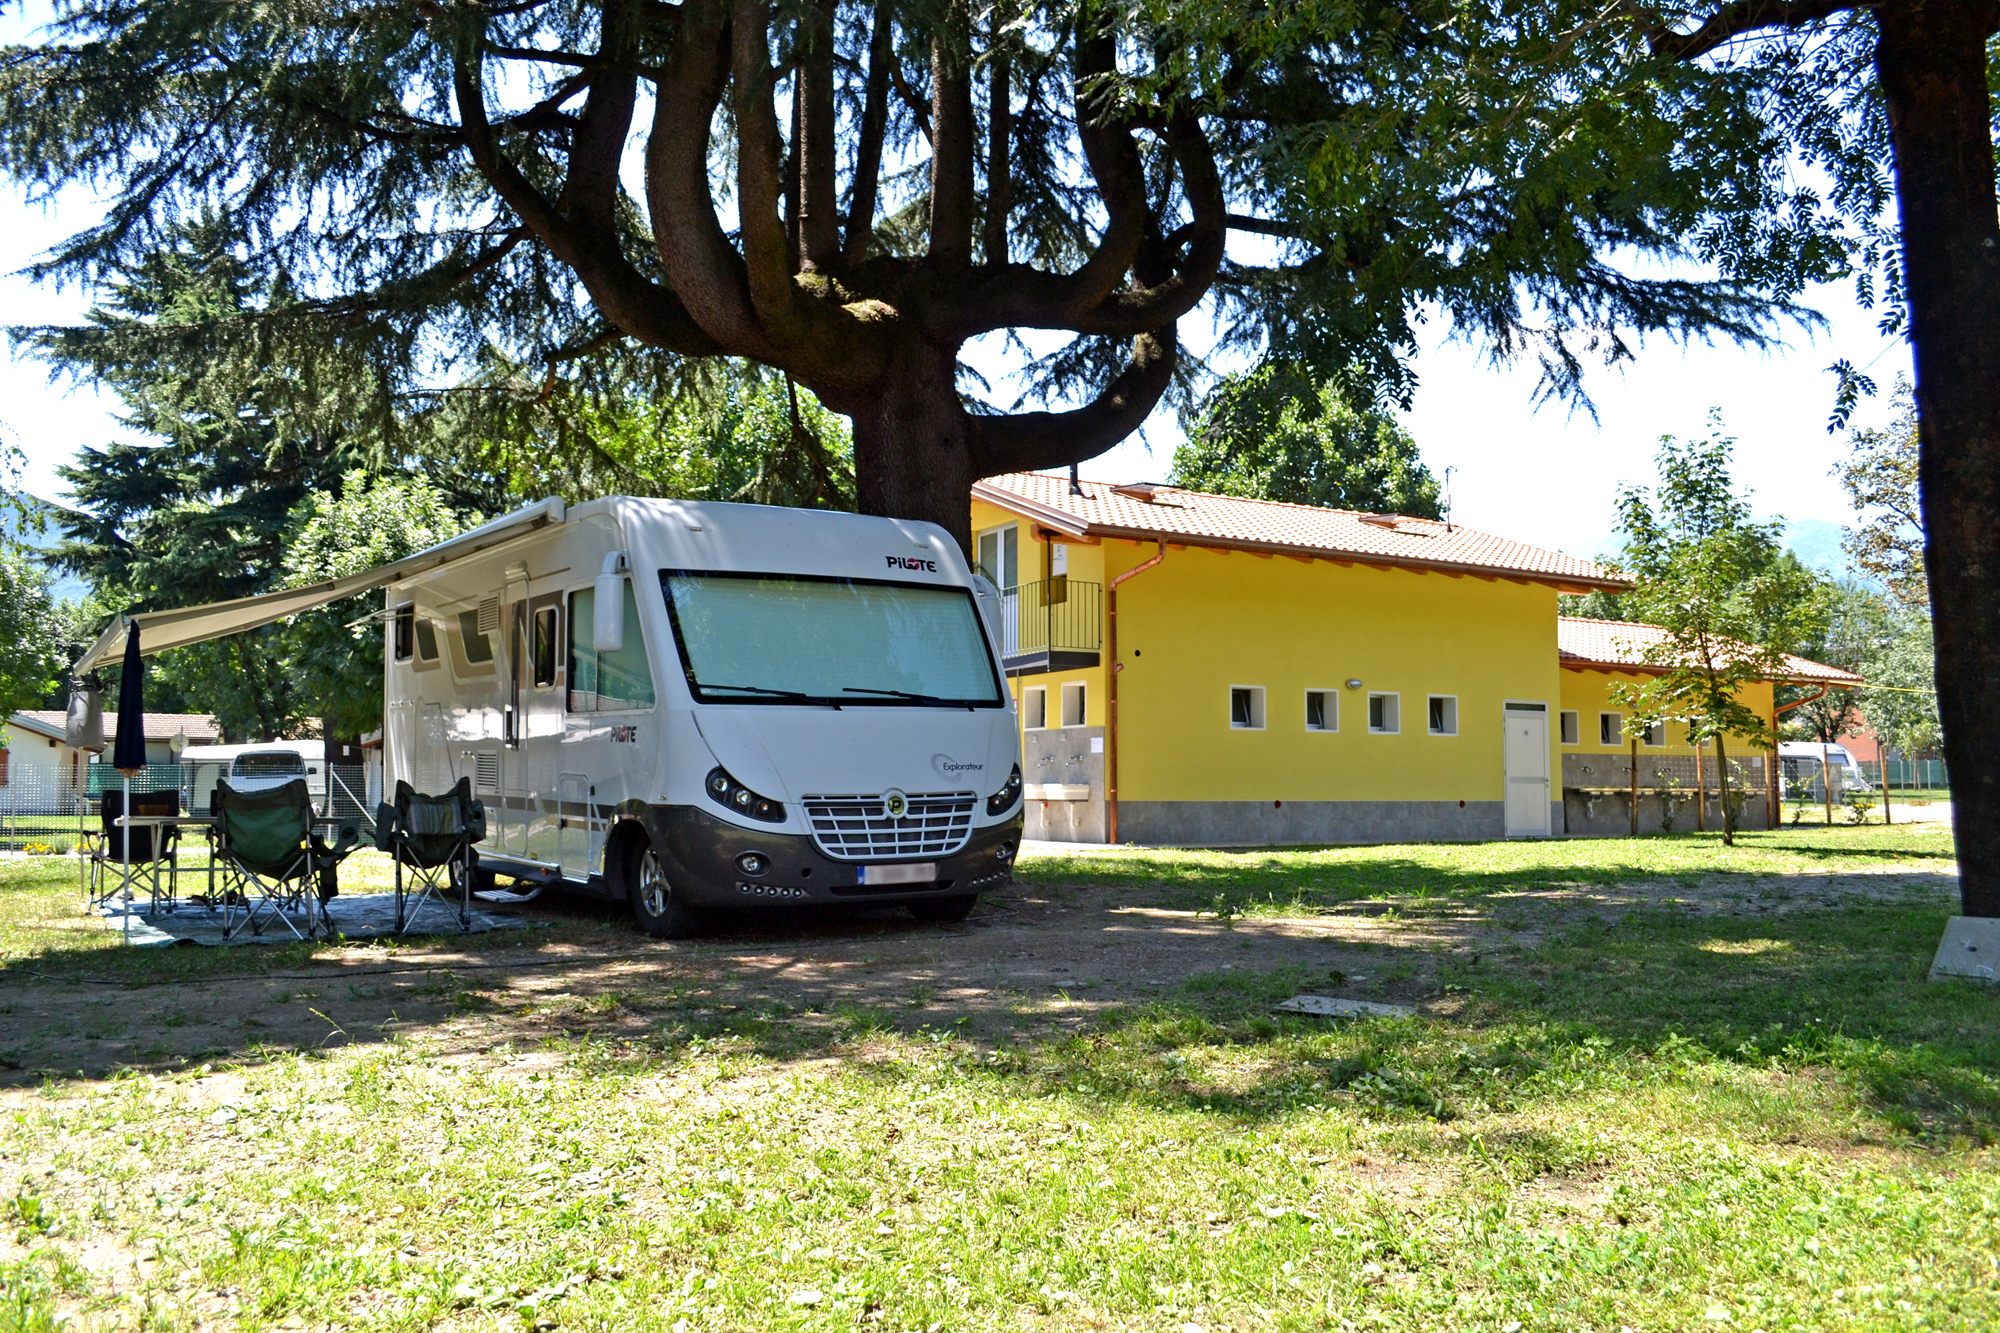 Camping Bellagio Camping Domaso Comer See Golden Sheep Camping